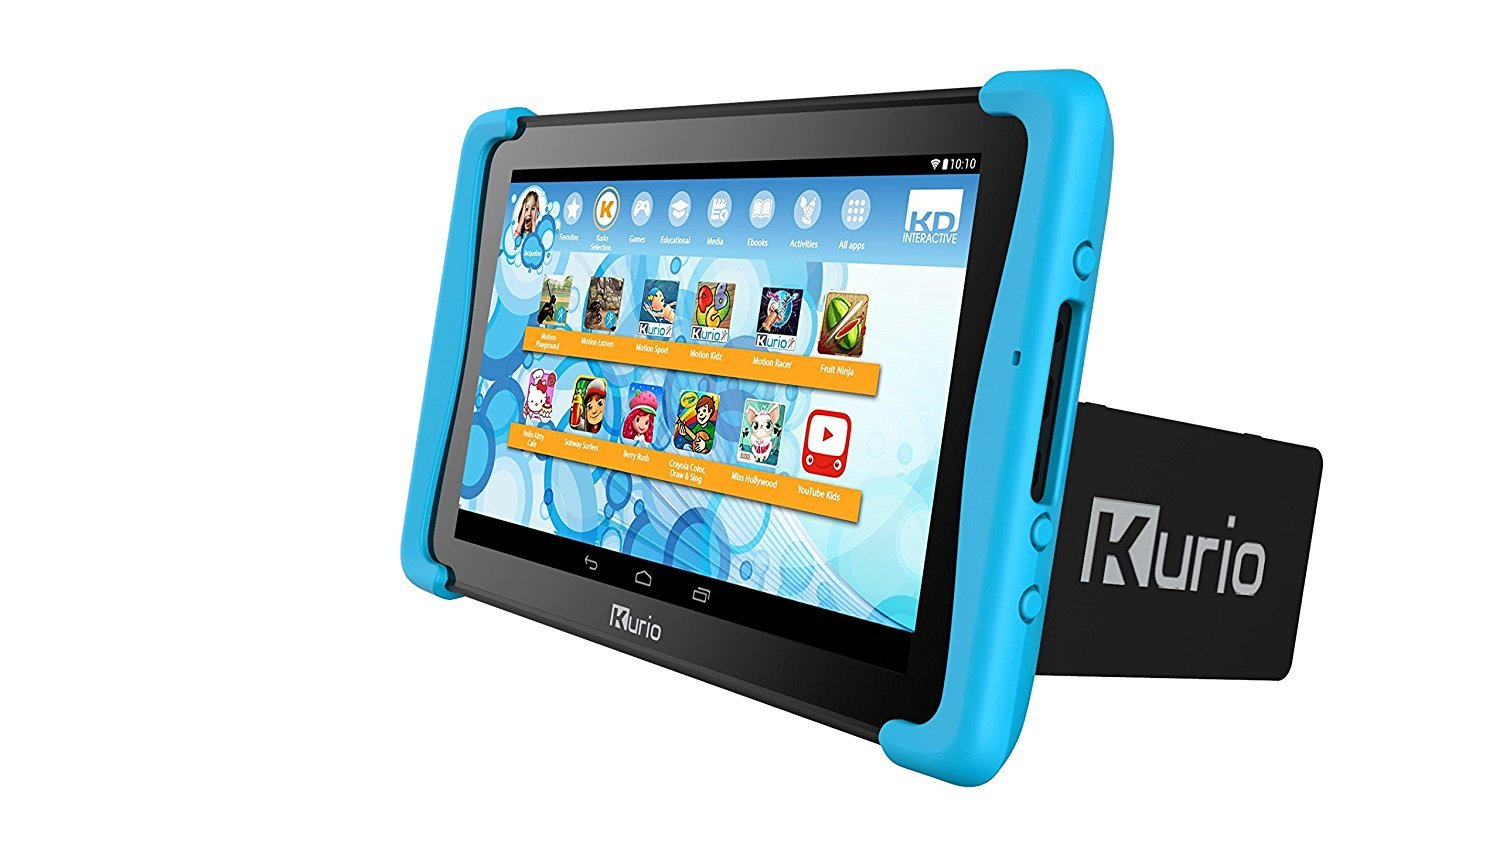 Kurio Xtreme 2 Tablet: 7'' Touch Screen, Quad Core, 16GB Storage, Android 5.0 Lollipop (Certified Refurbished) by Kurio